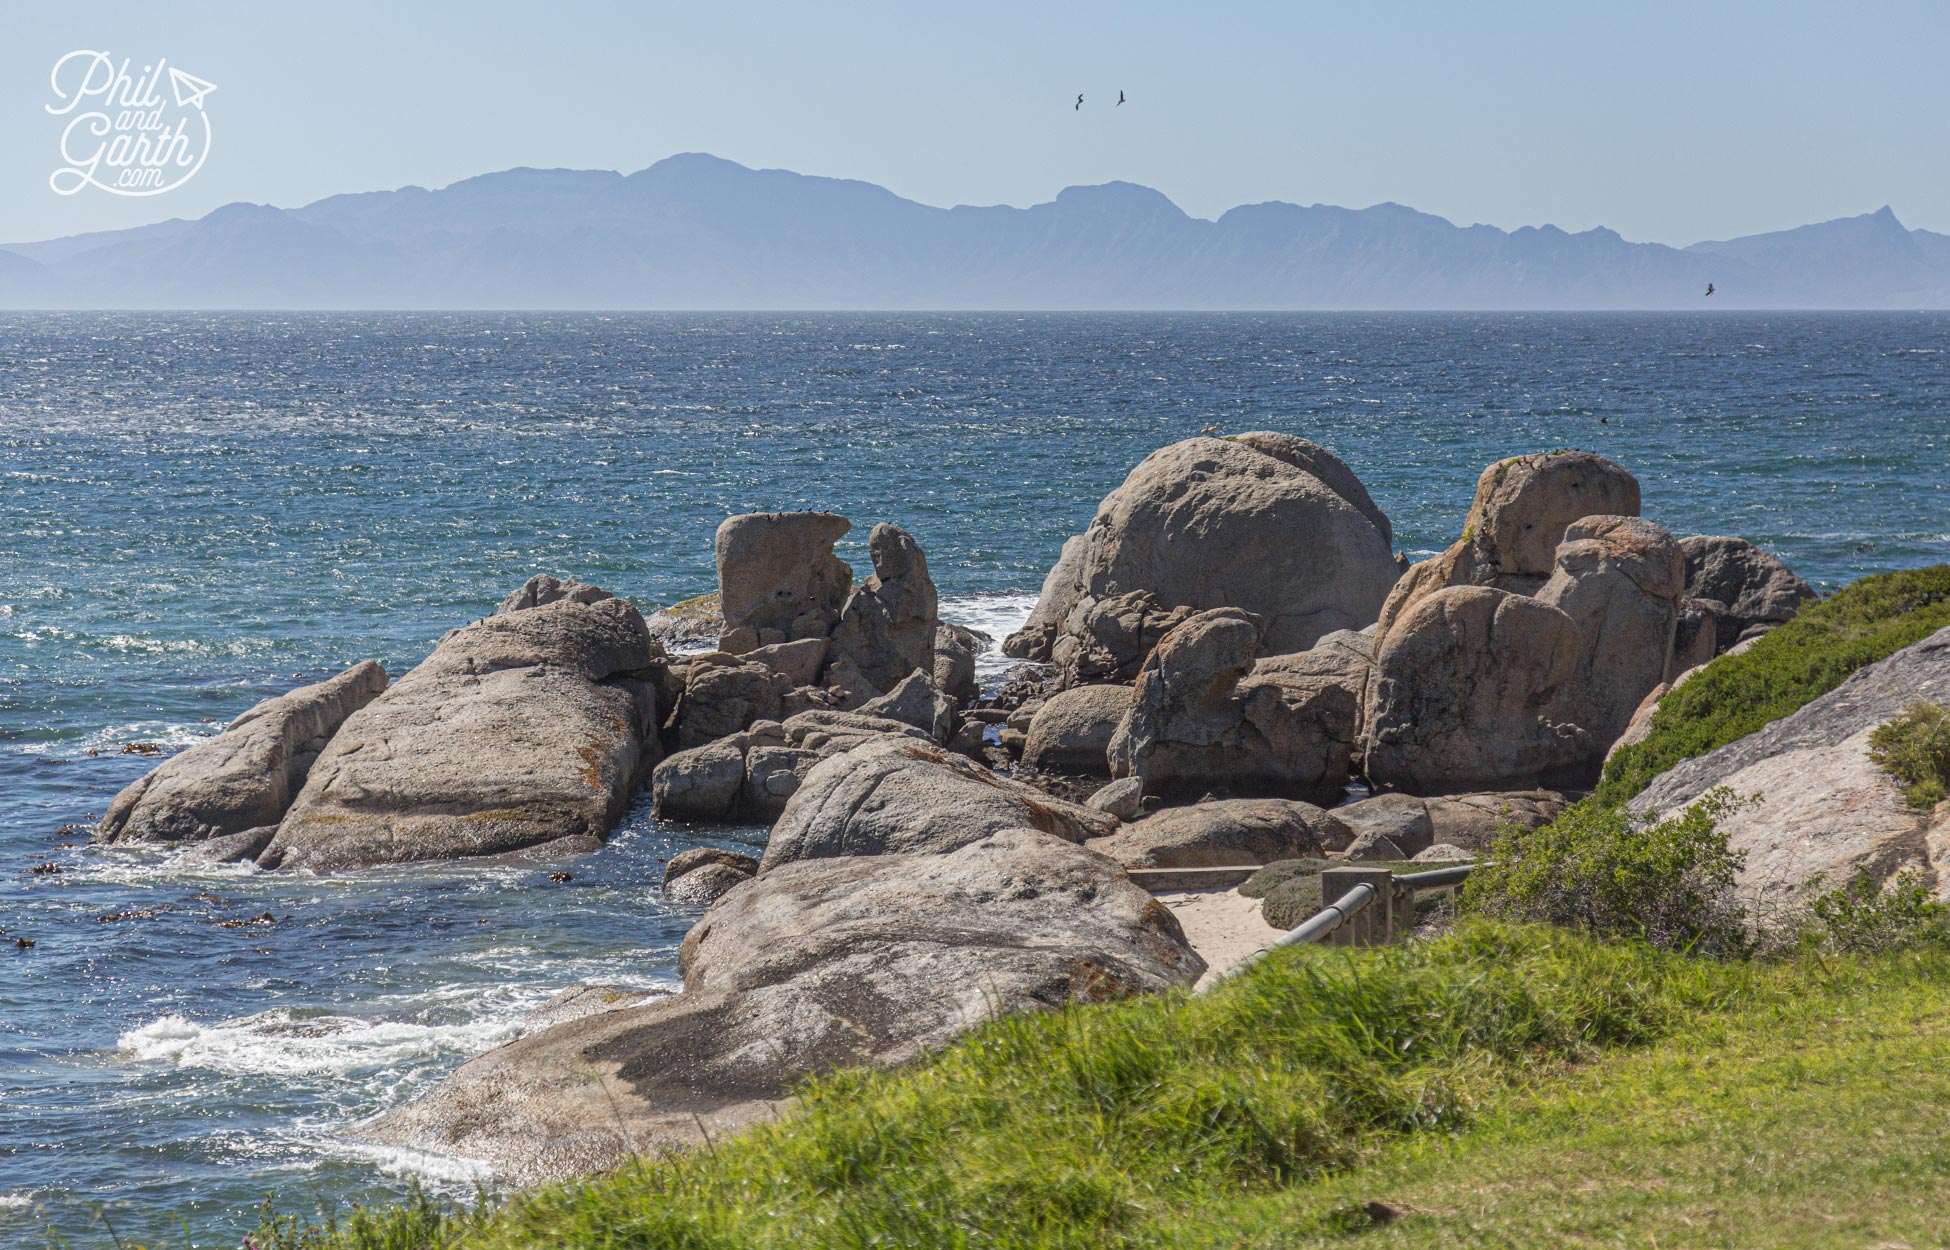 The famous Boulders Penguin Colony near Cape Town, South Africa